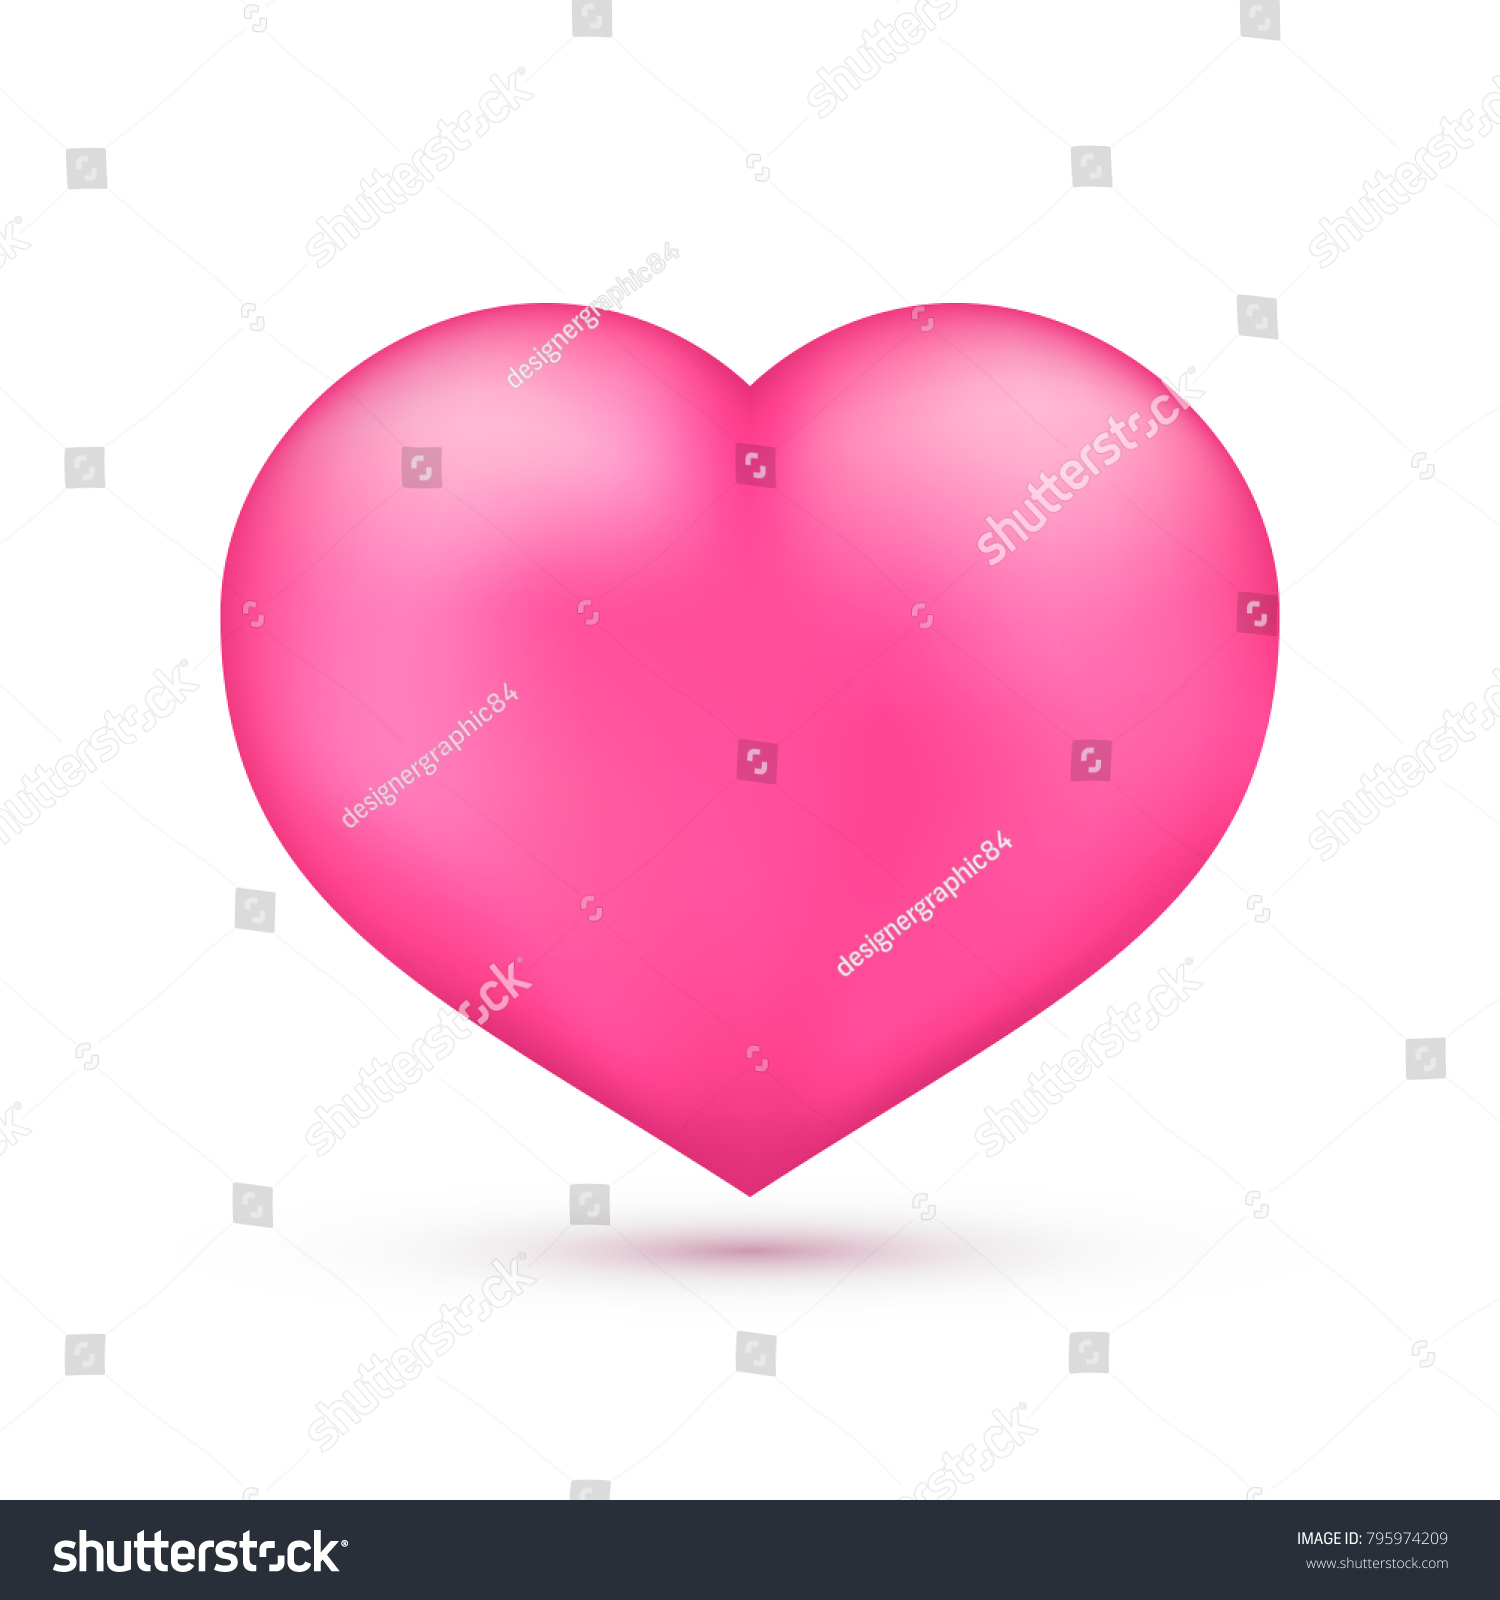 Realistic Pink Heart Isolated On White Valentine S Day Greeting